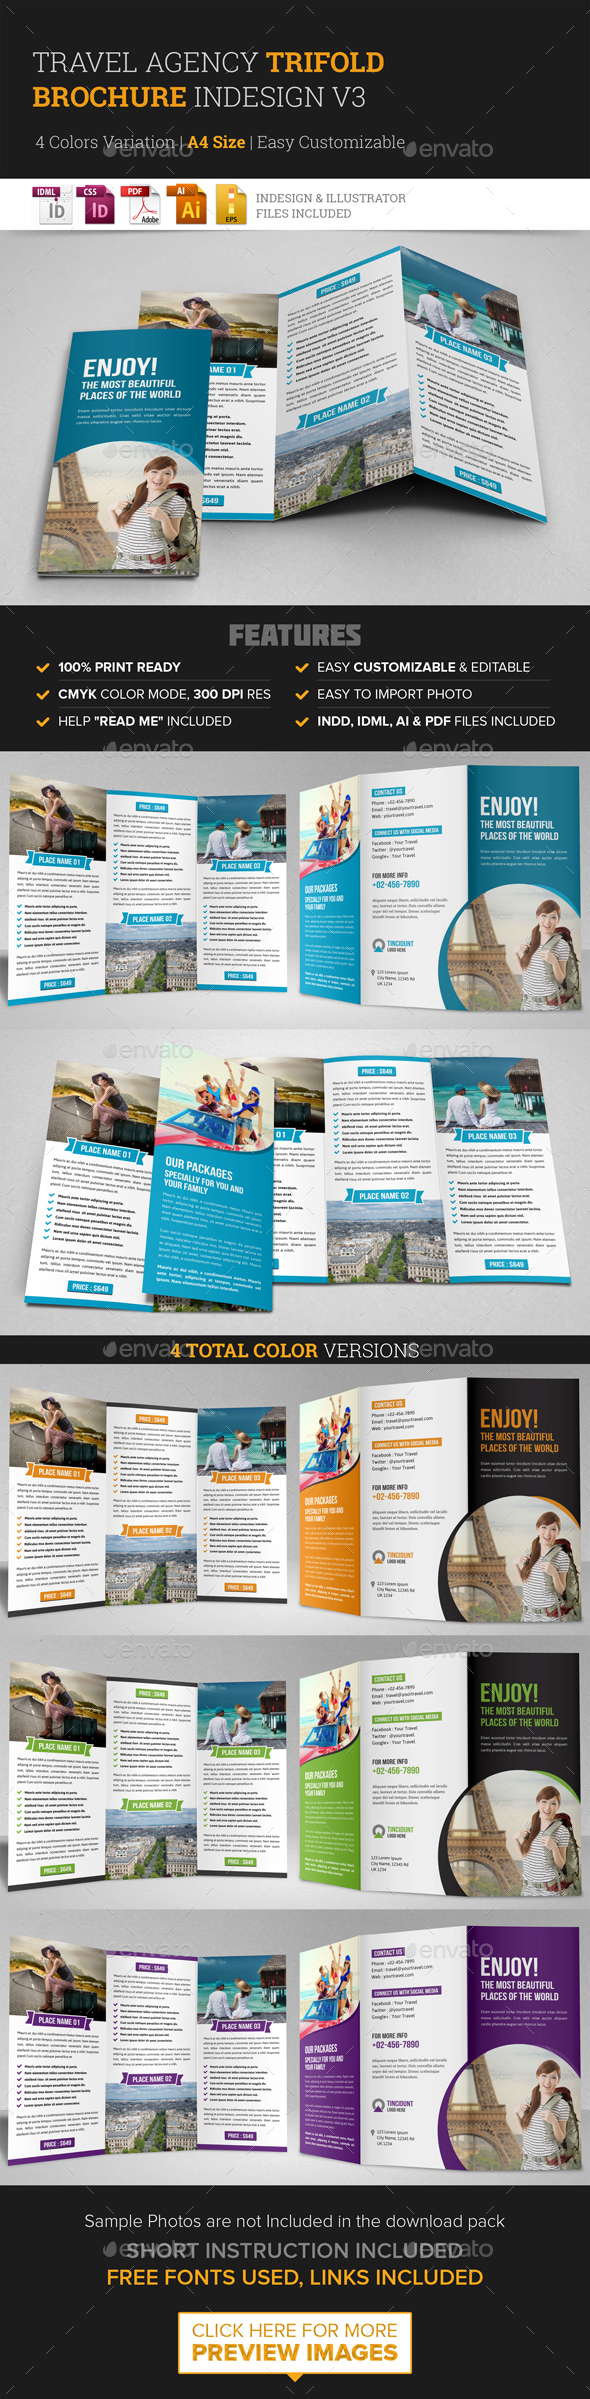 Travel Trifold Brochure InDesign Template v3 - Corporate Brochures